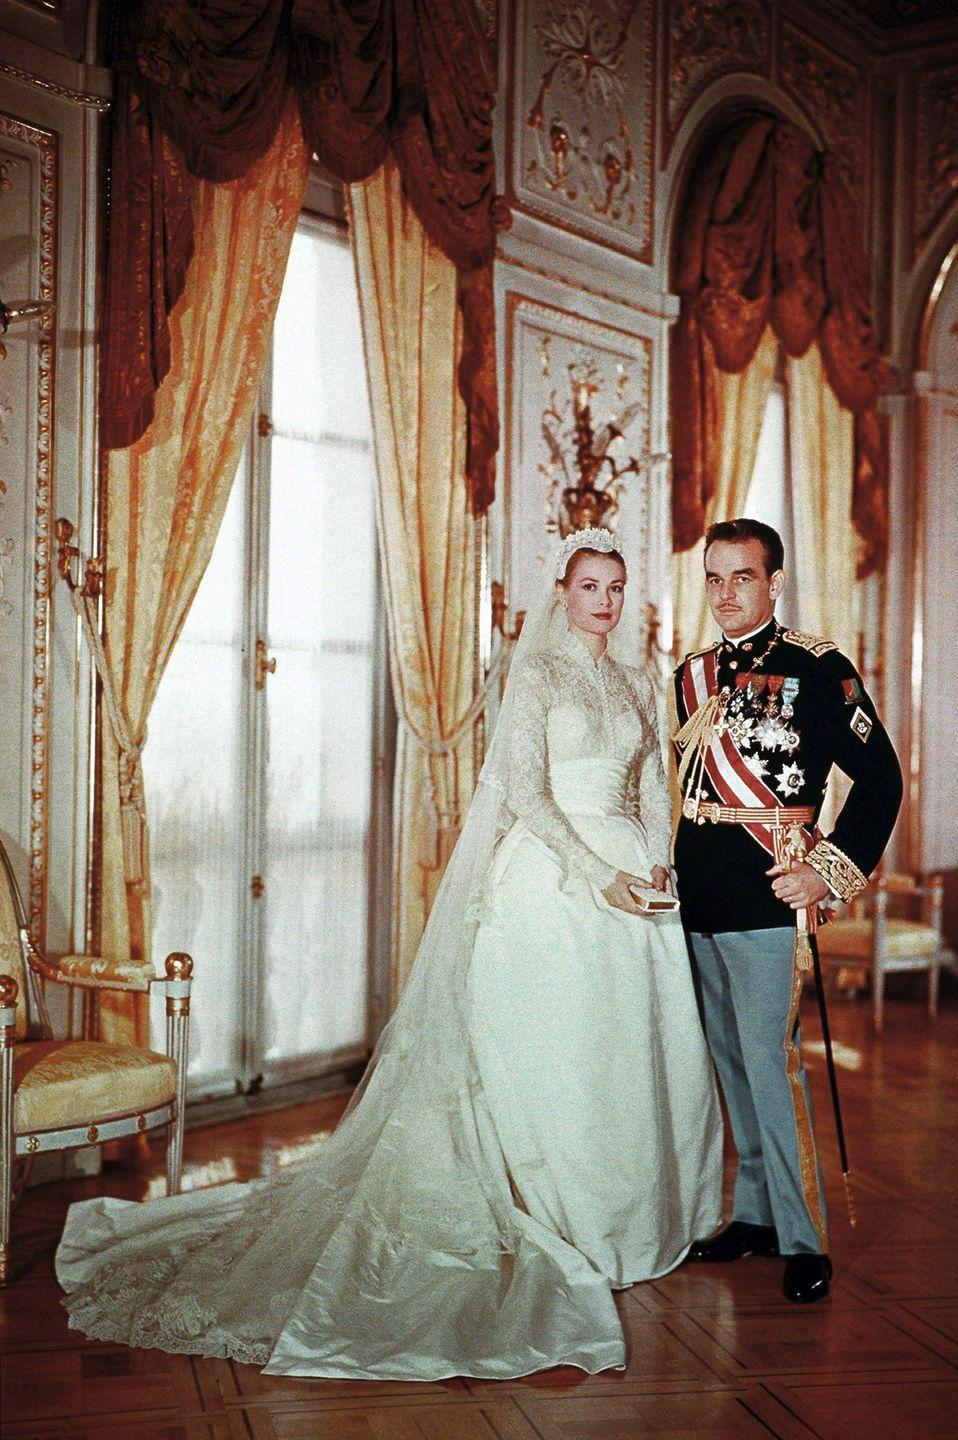 """<p>A wedding for the history books, Grace Kelly wed the Prince of Monaco in 1956, making the Hollywood starlet a real-life princess. Her wedding dress, designed by Helen Rode of MGM, is known as one of the most iconic wedding dresses and of all time— it's now on display at the <a href=""""http://www.philamuseum.org/collections/permanent/56621.html"""" rel=""""nofollow noopener"""" target=""""_blank"""" data-ylk=""""slk:Philadelphia Museum of Art"""" class=""""link rapid-noclick-resp"""">Philadelphia Museum of Art</a>.</p>"""